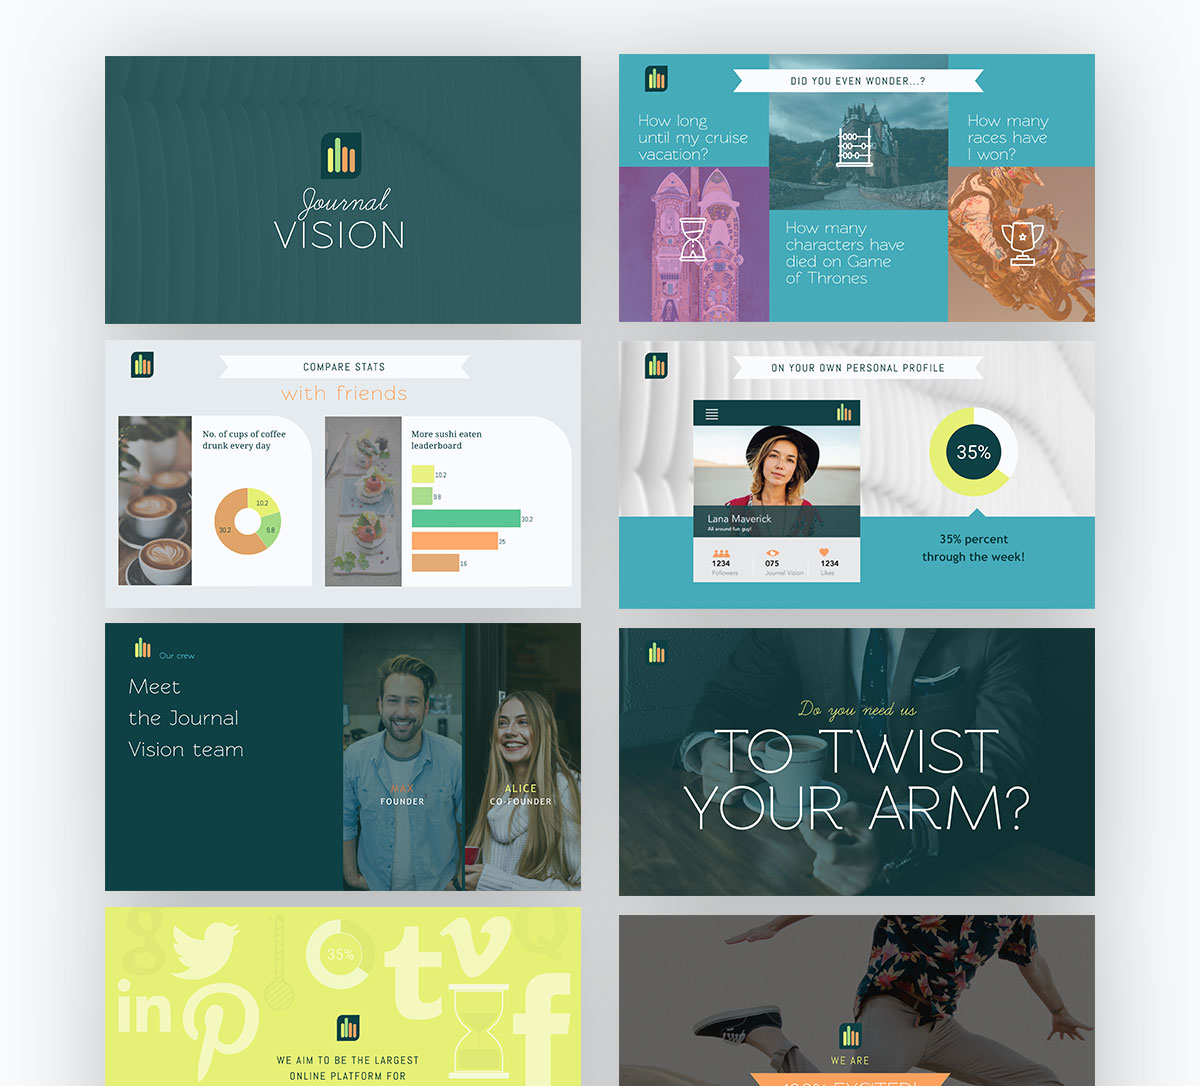 pitch deck design - journal vision pitch deck template